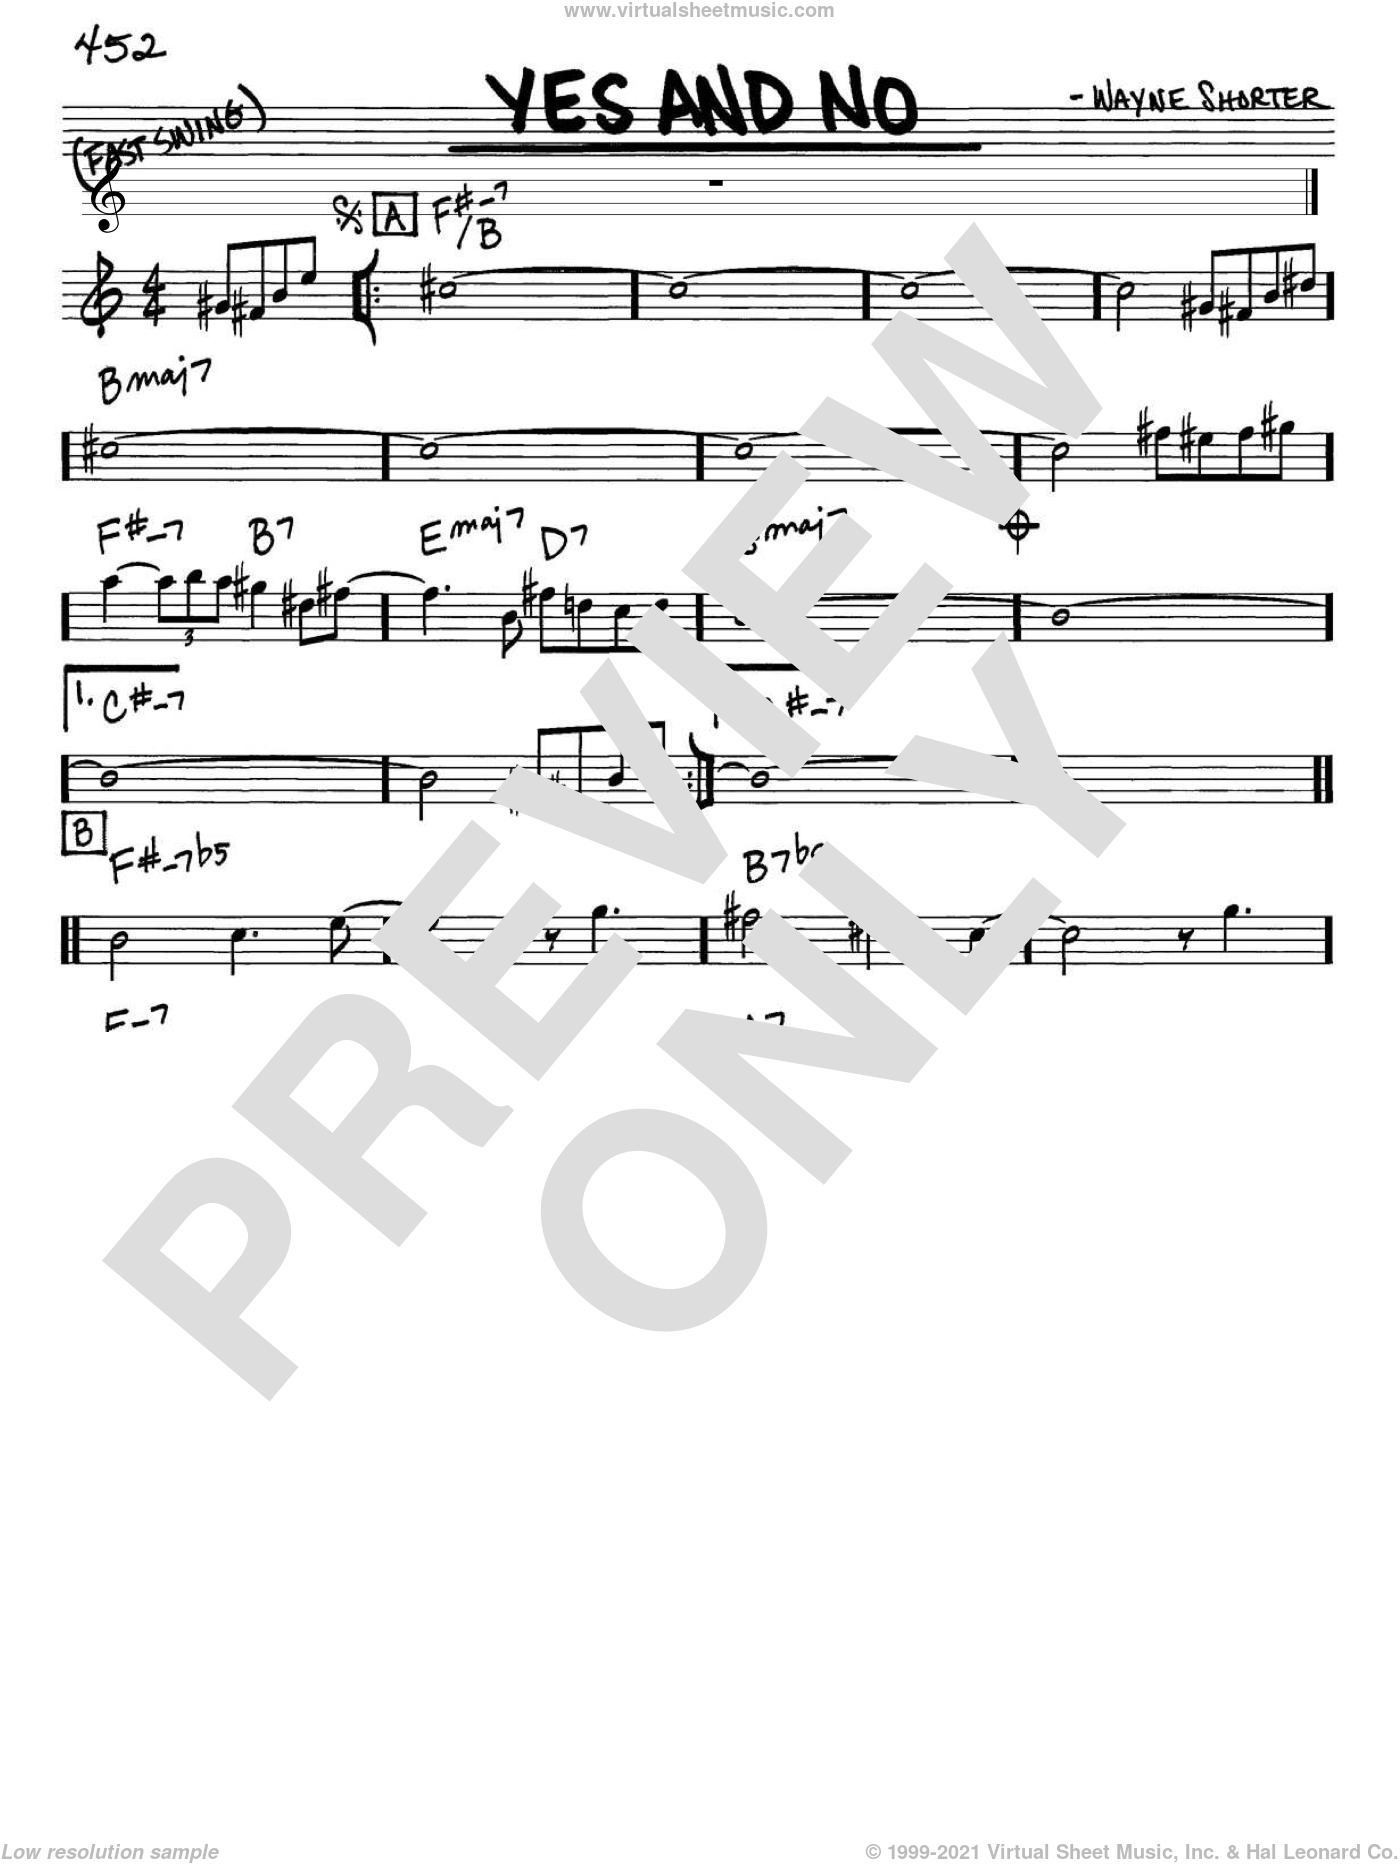 Yes And No sheet music for voice and other instruments (in Eb) by Wayne Shorter, intermediate